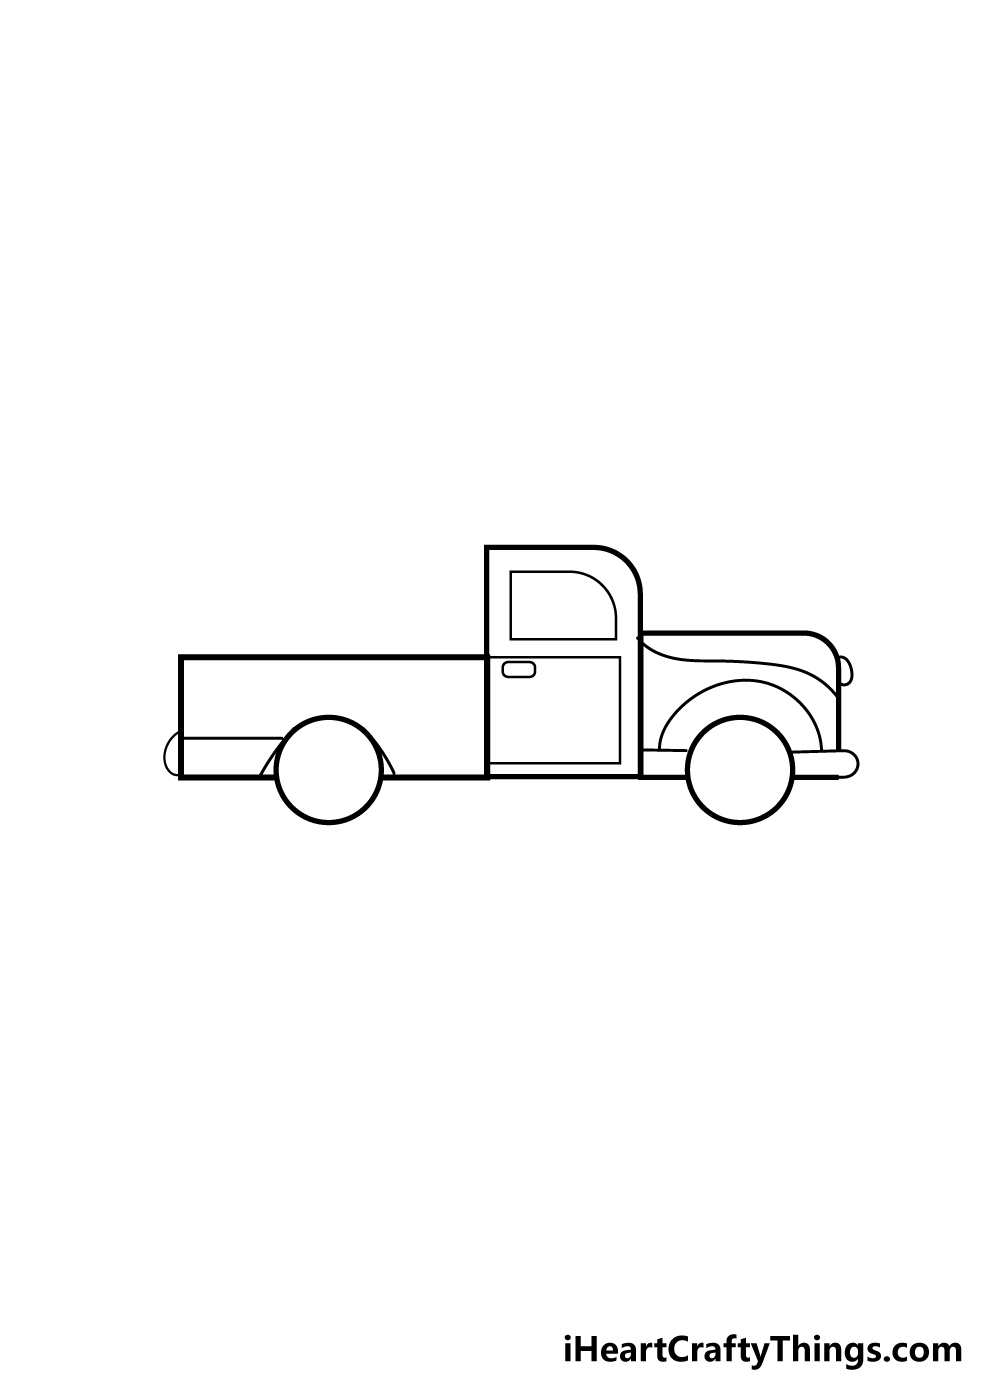 truck drawing step 4